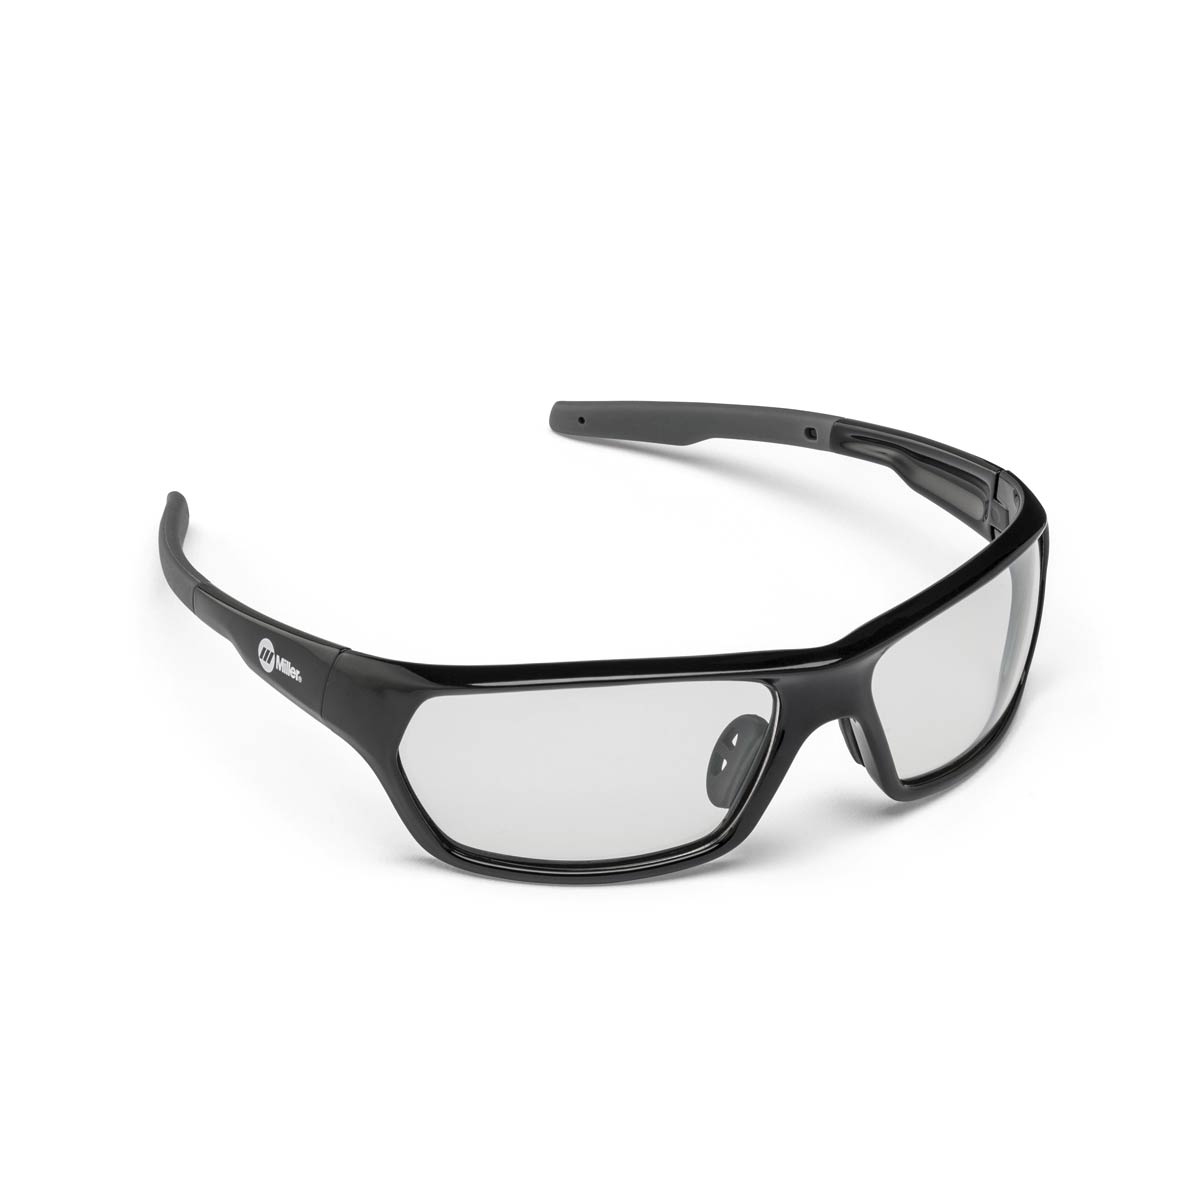 SAFETY GLASSES SLAG BLACK CLEAR. Part: 272201. Pack: 1